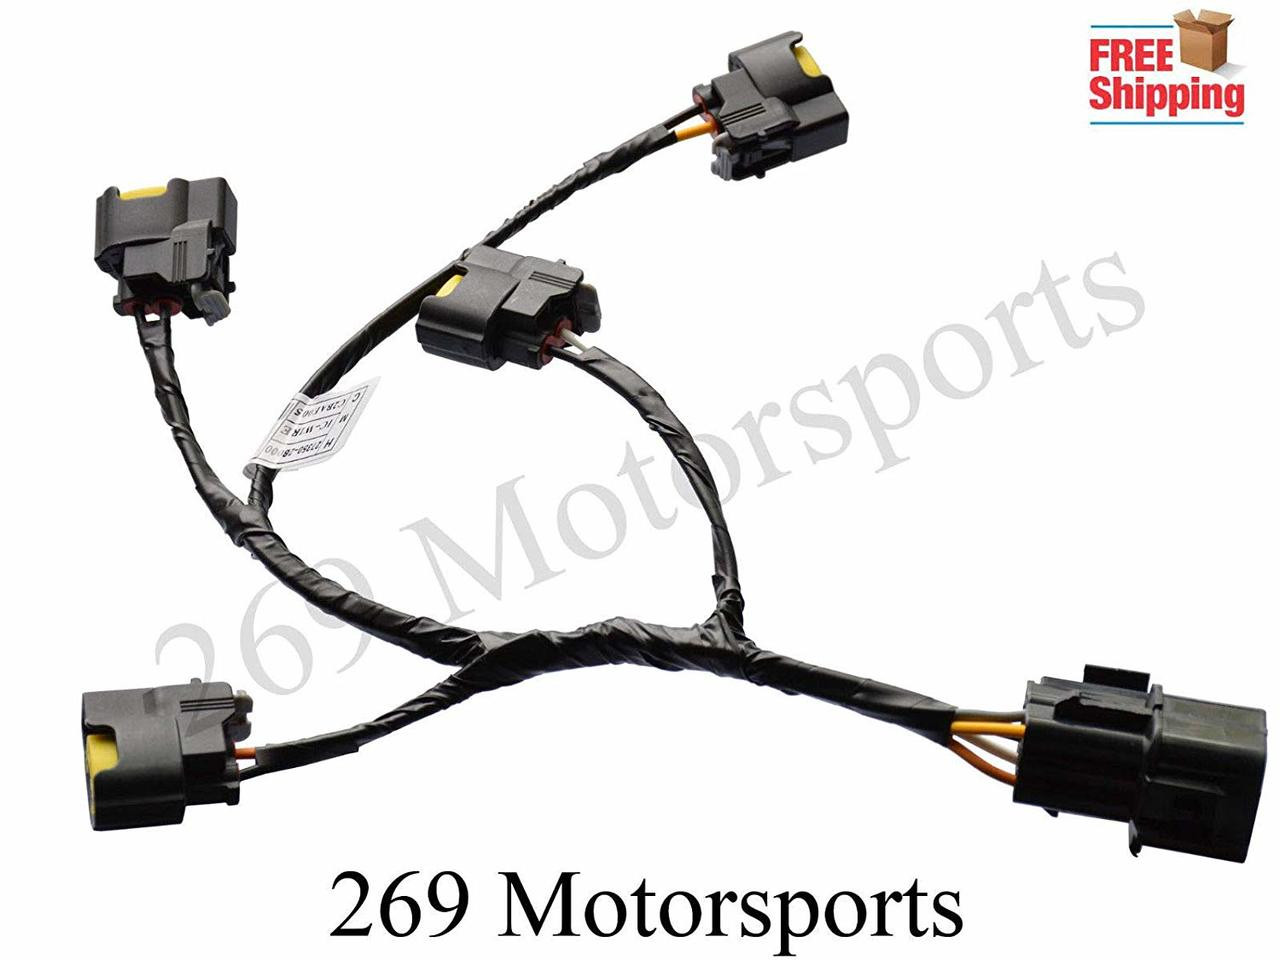 ignition coil wire harness for 10 14 veloster rio soul 1 6l replaces 27350 2b000 [ 1280 x 960 Pixel ]